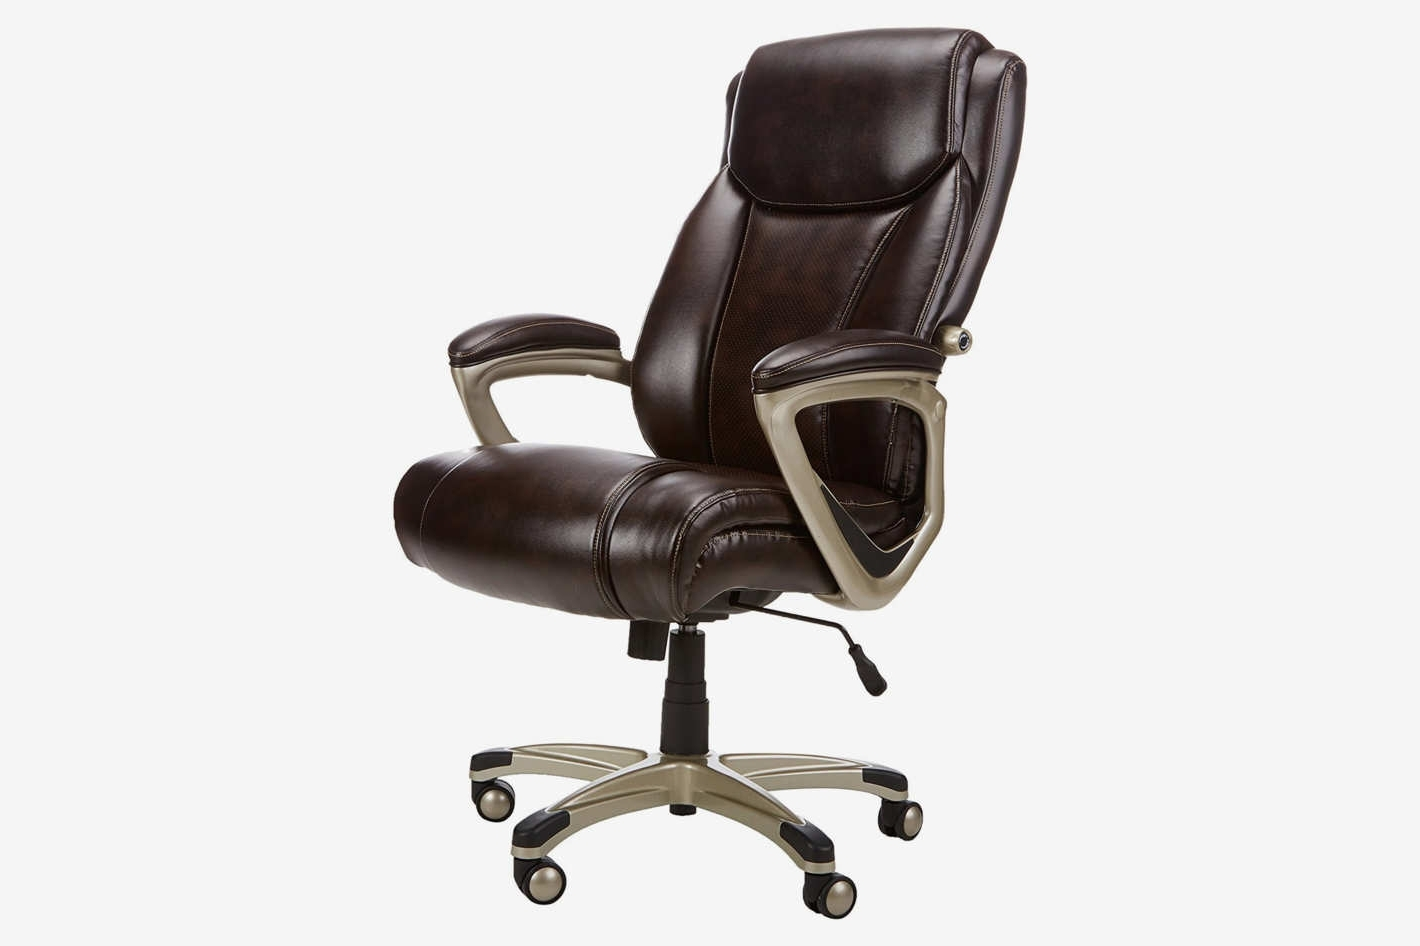 Quality Executive Office Chairs For Latest 16 Best Office Chairs And Home Office Chairs — (View 7 of 20)